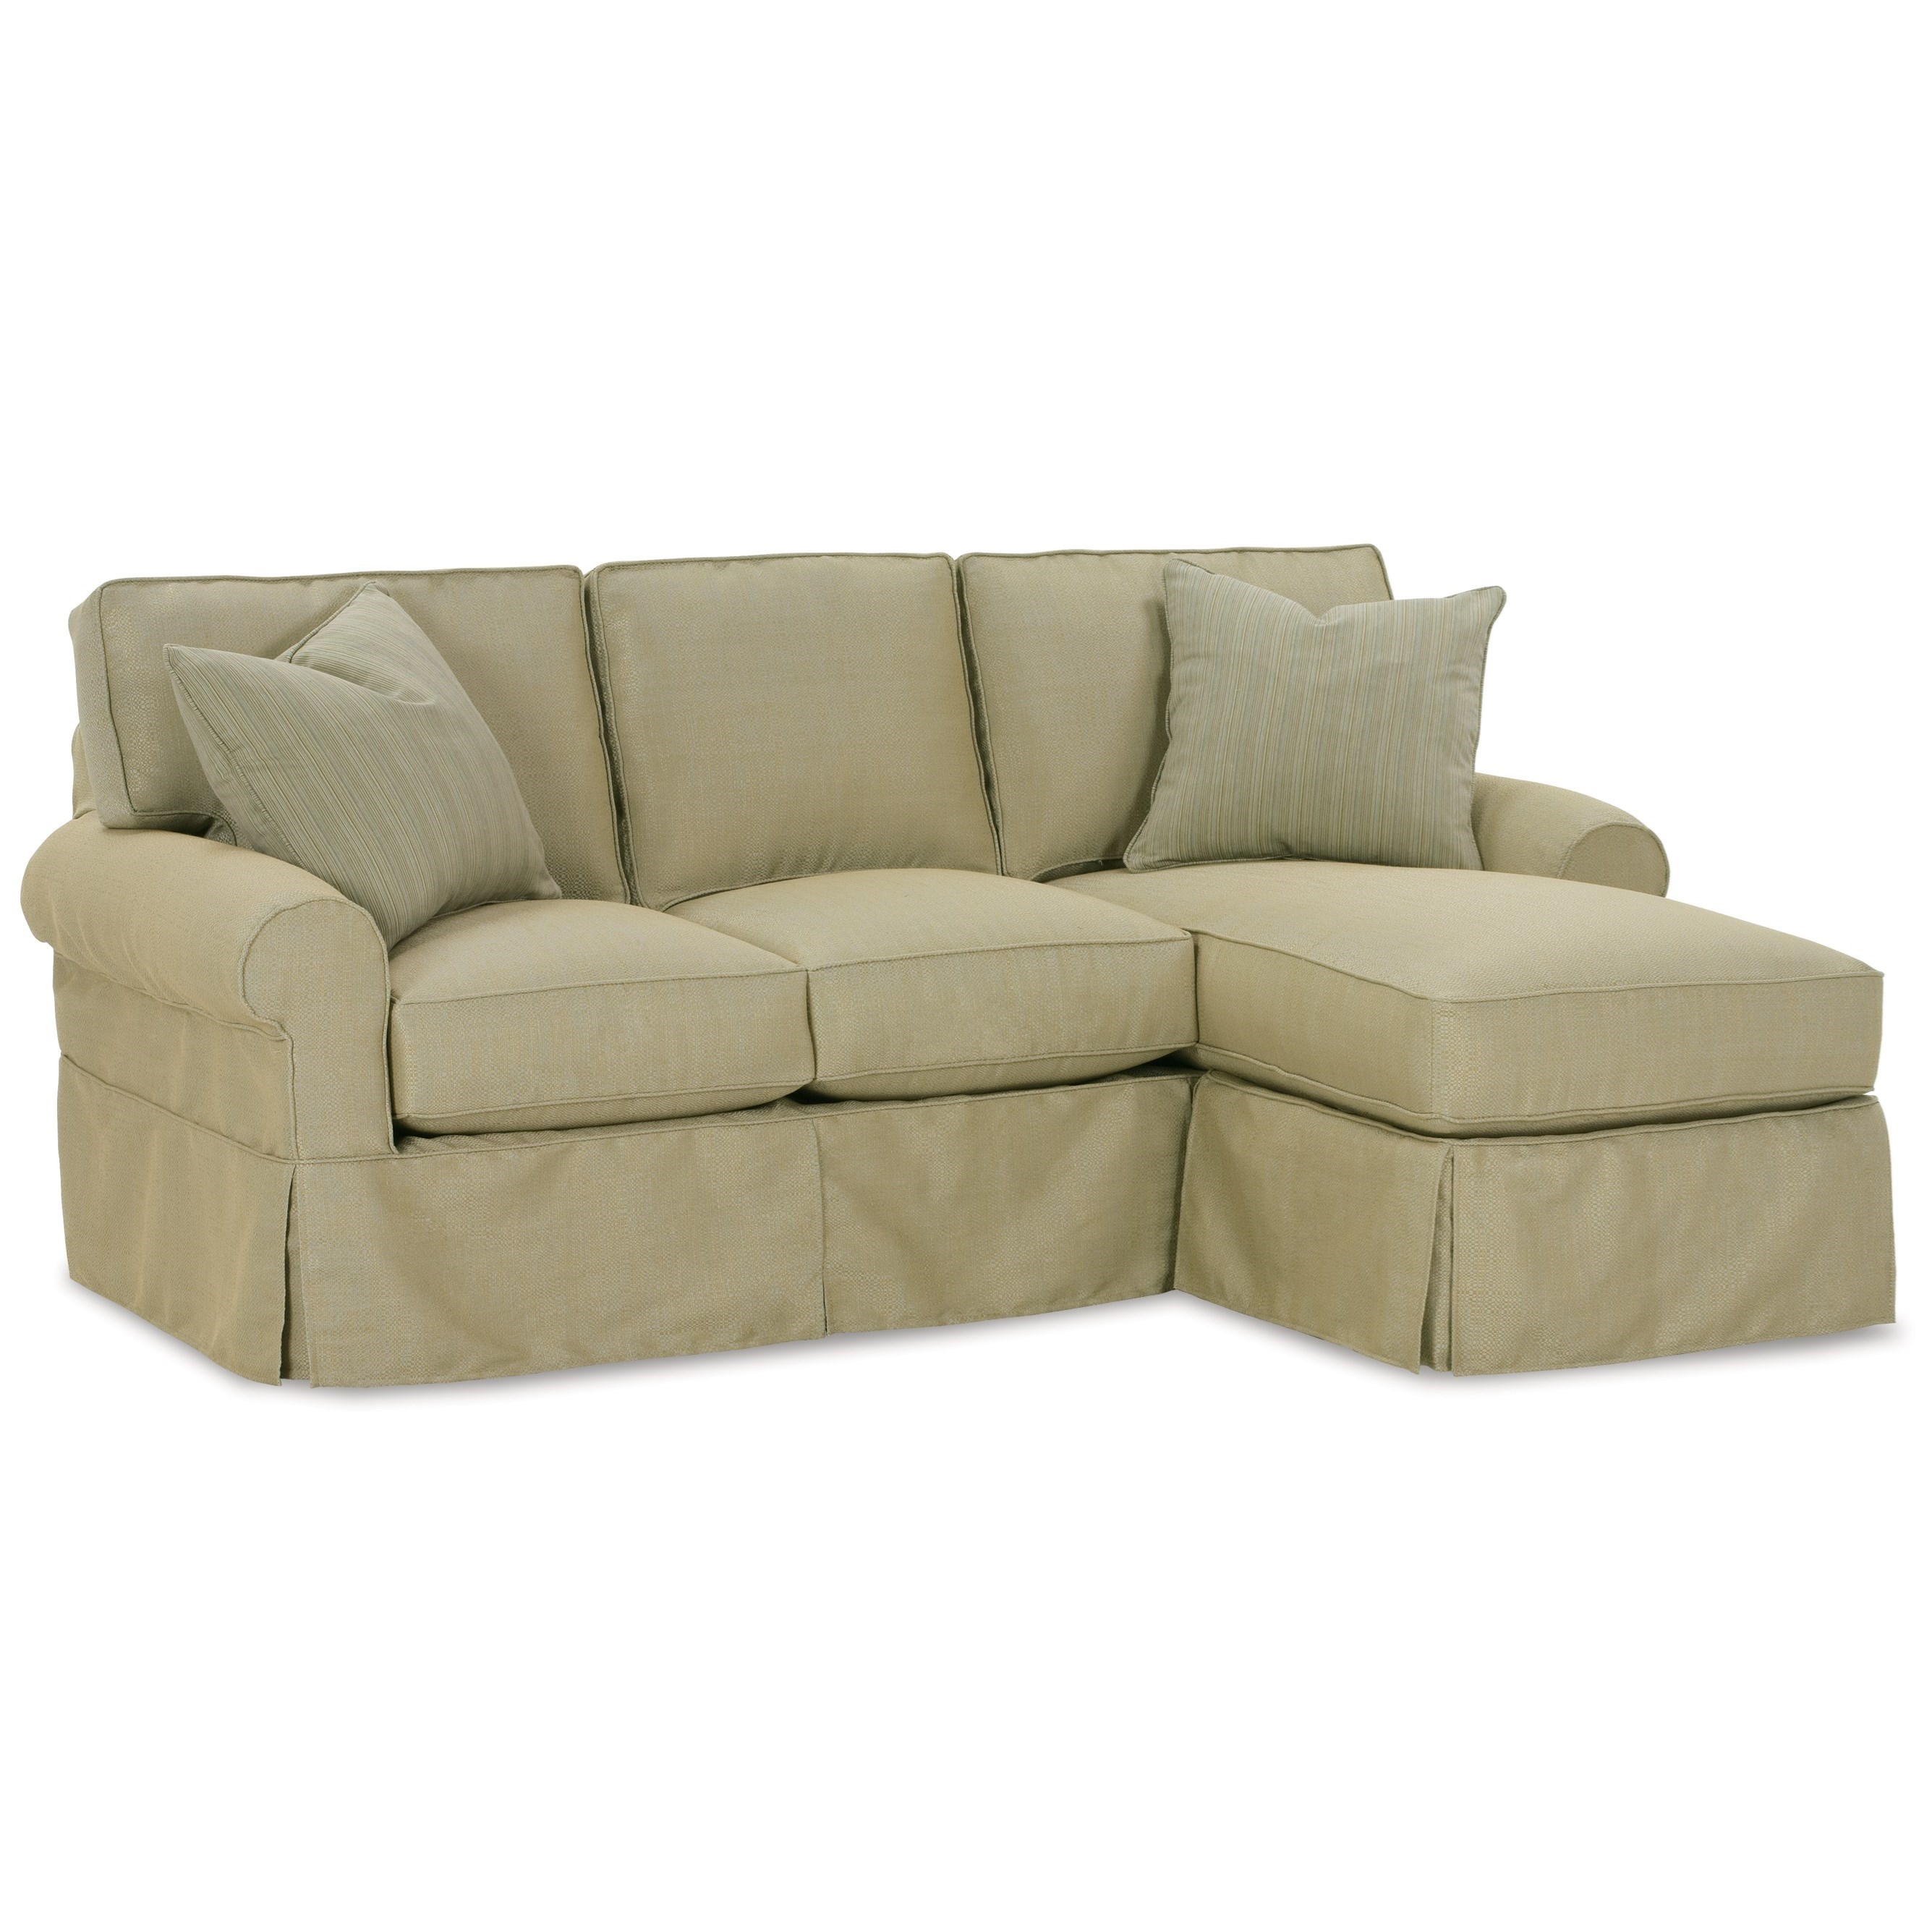 Nantucket  Sofa with Chaise by Rowe at Saugerties Furniture Mart